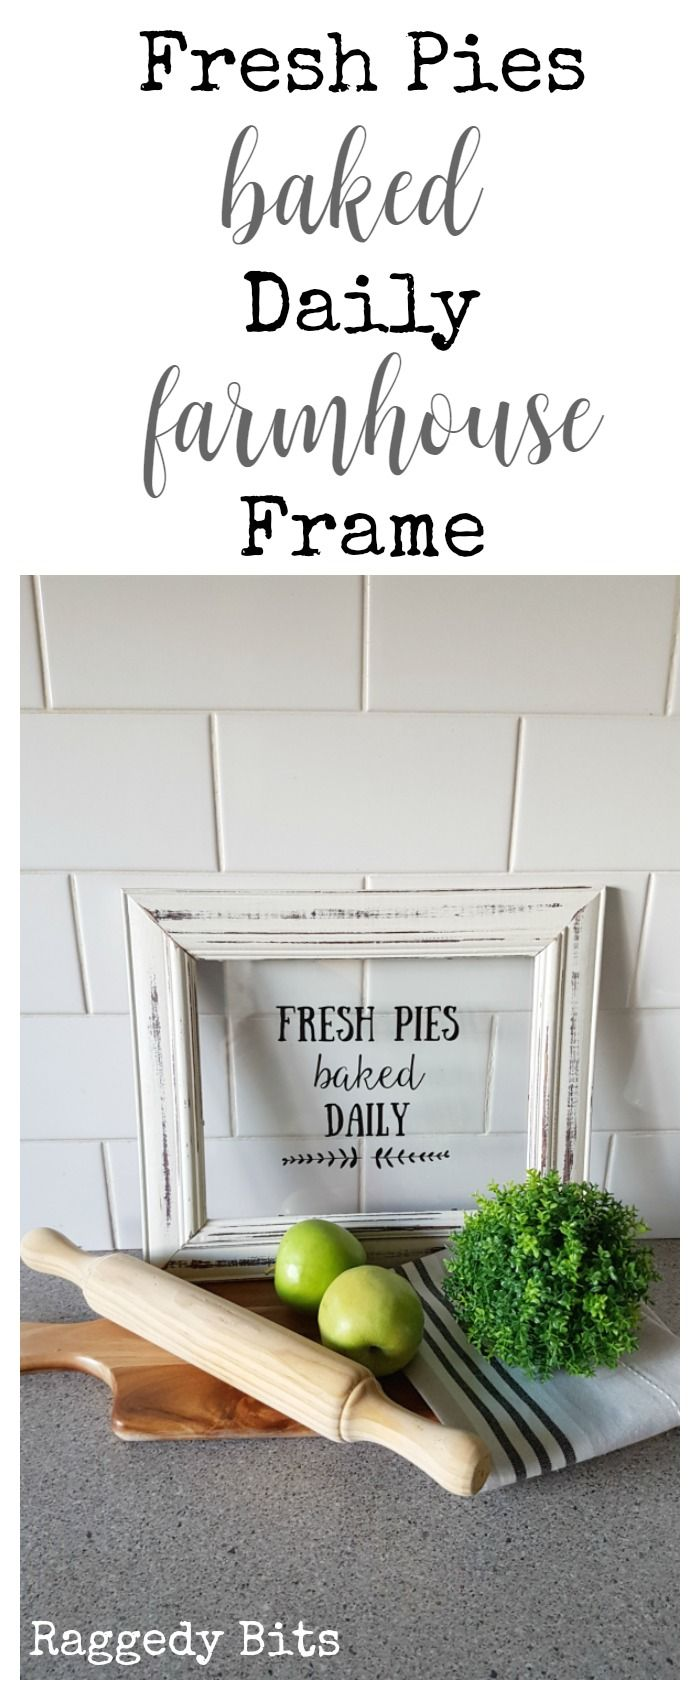 After many years of awakening to the yummy smell of fresh apple pies being baked by my Granny using apples picked straight from her orchid, I'm sharing a super simple Fresh Pies Baked Daily Farmhouse Frame to make | Full tutorial | www.raggedy-bits.com